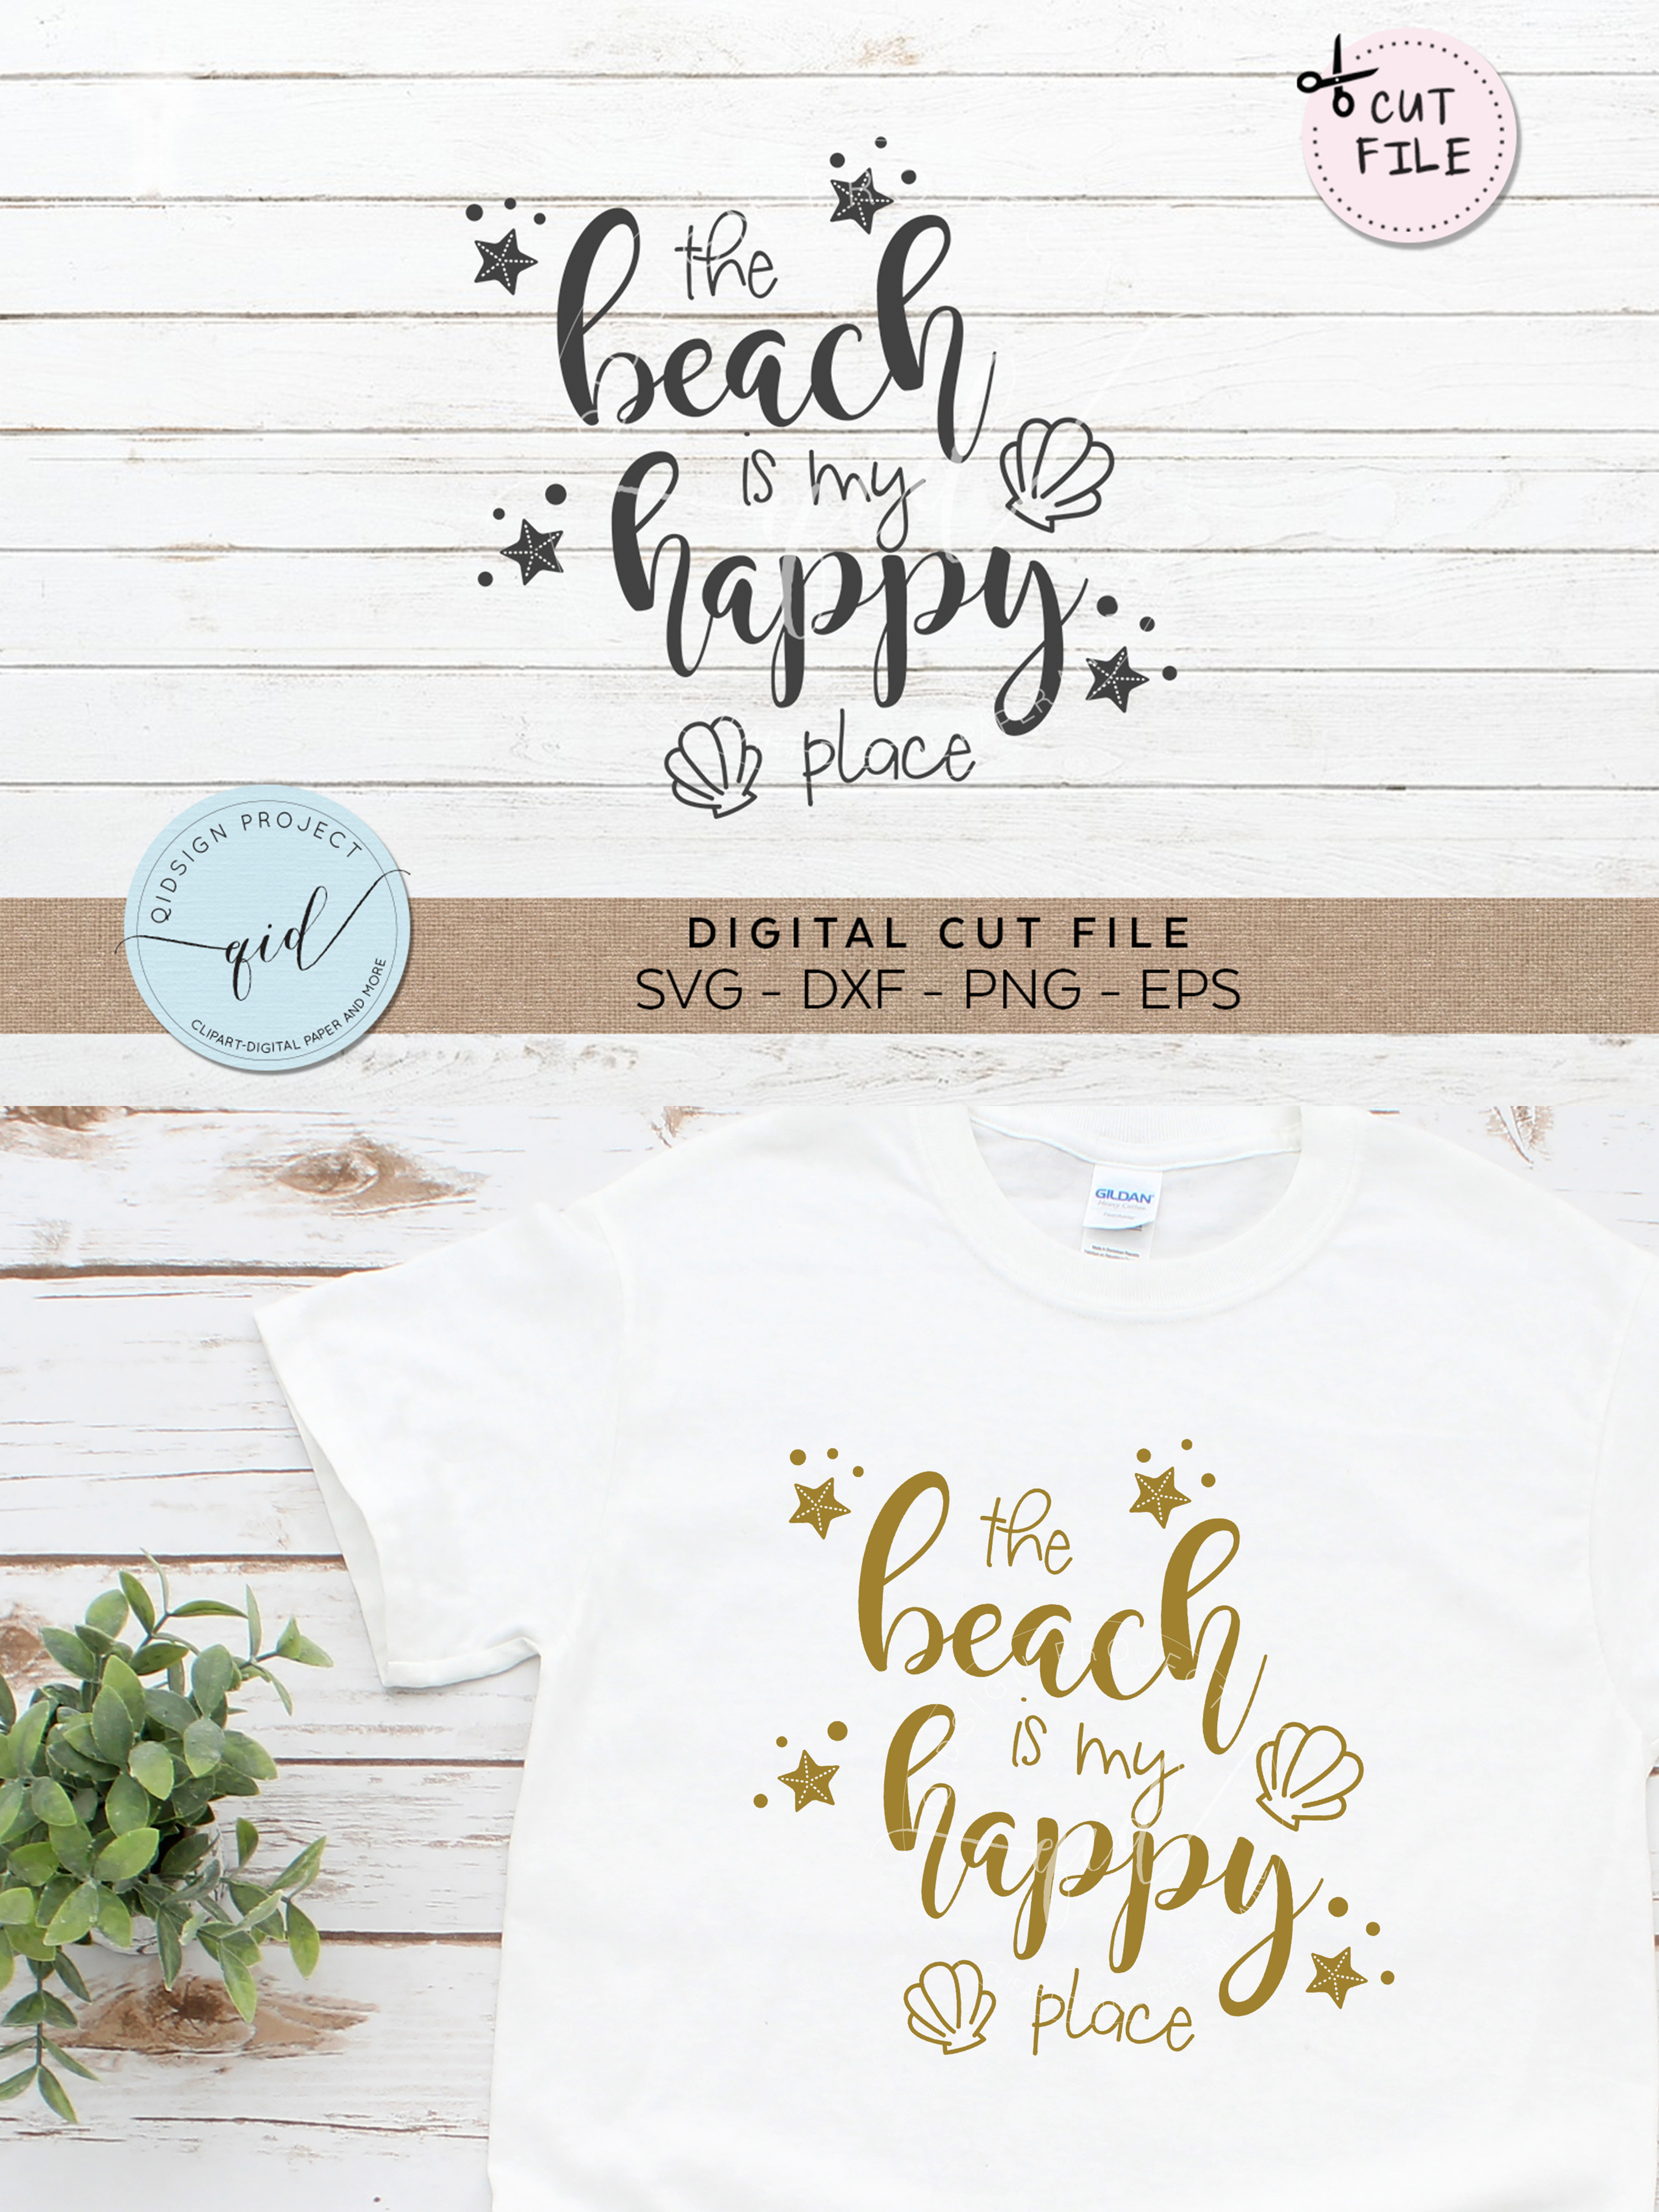 The beach is my happy place clipart clipart transparent library The Beach Is My Happy Place SVG DXF PNG EPS clipart transparent library